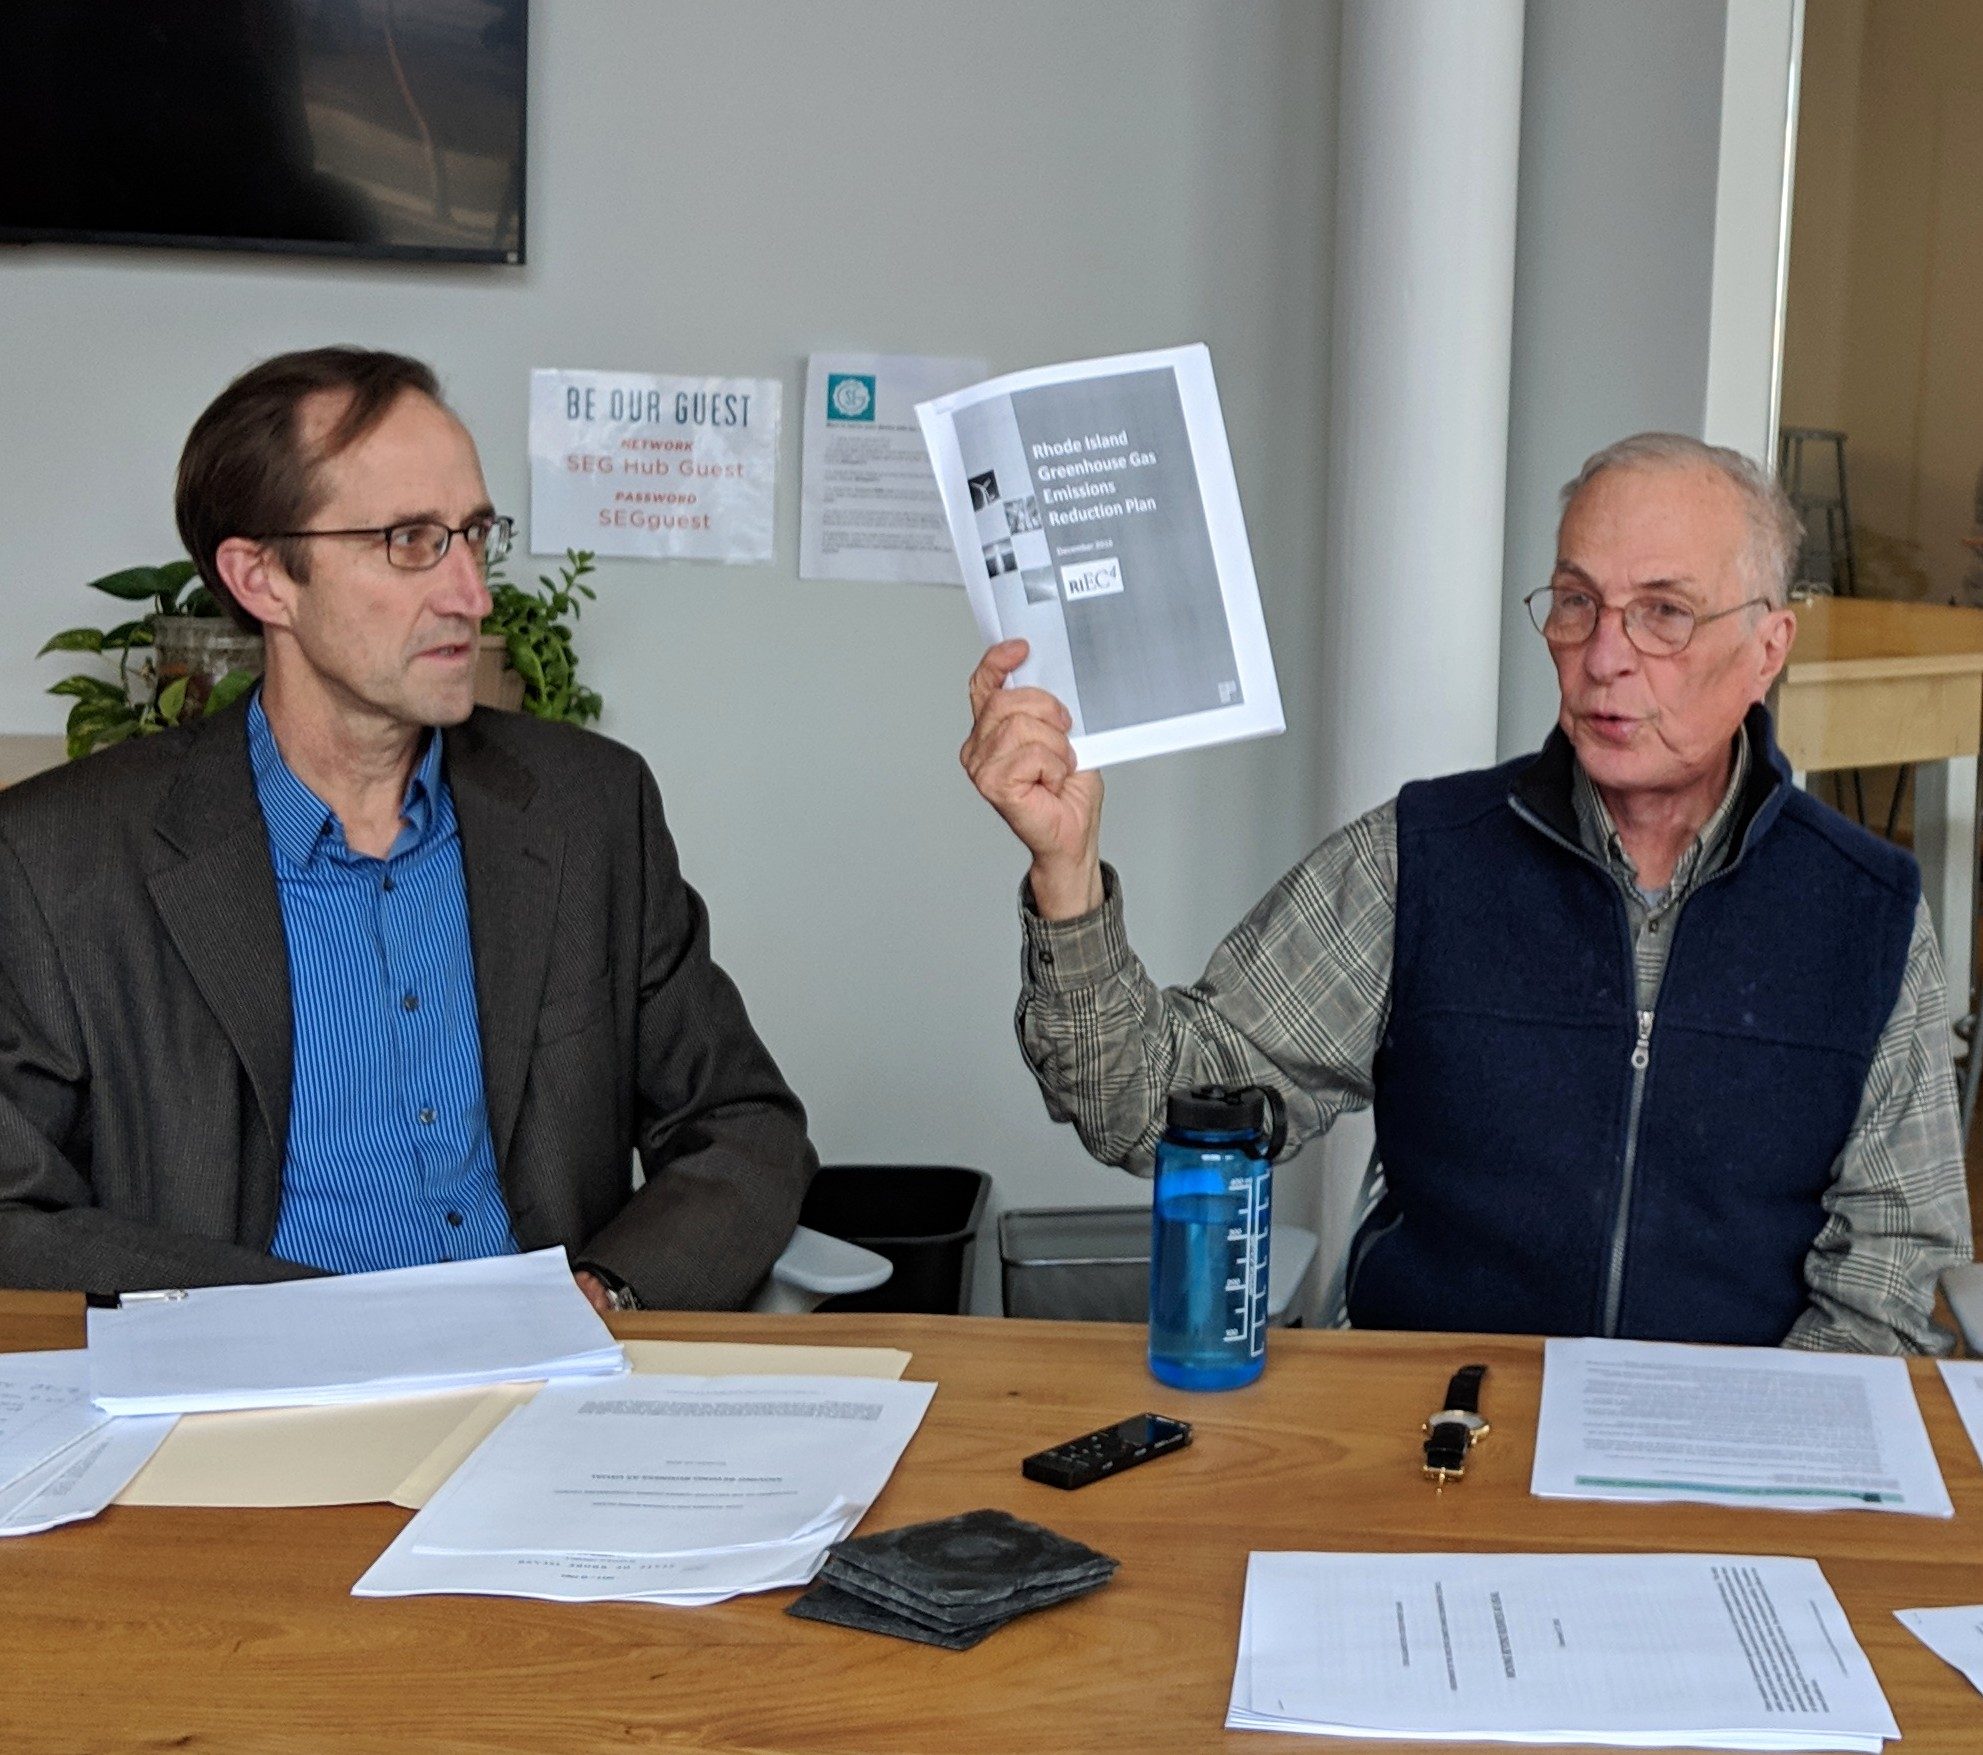 J. Timmons Roberts, left, and Ken Payne at a press event for the release of an assessment of the Rhode Island climate council. (Tim Faulkner/ecoRI News)